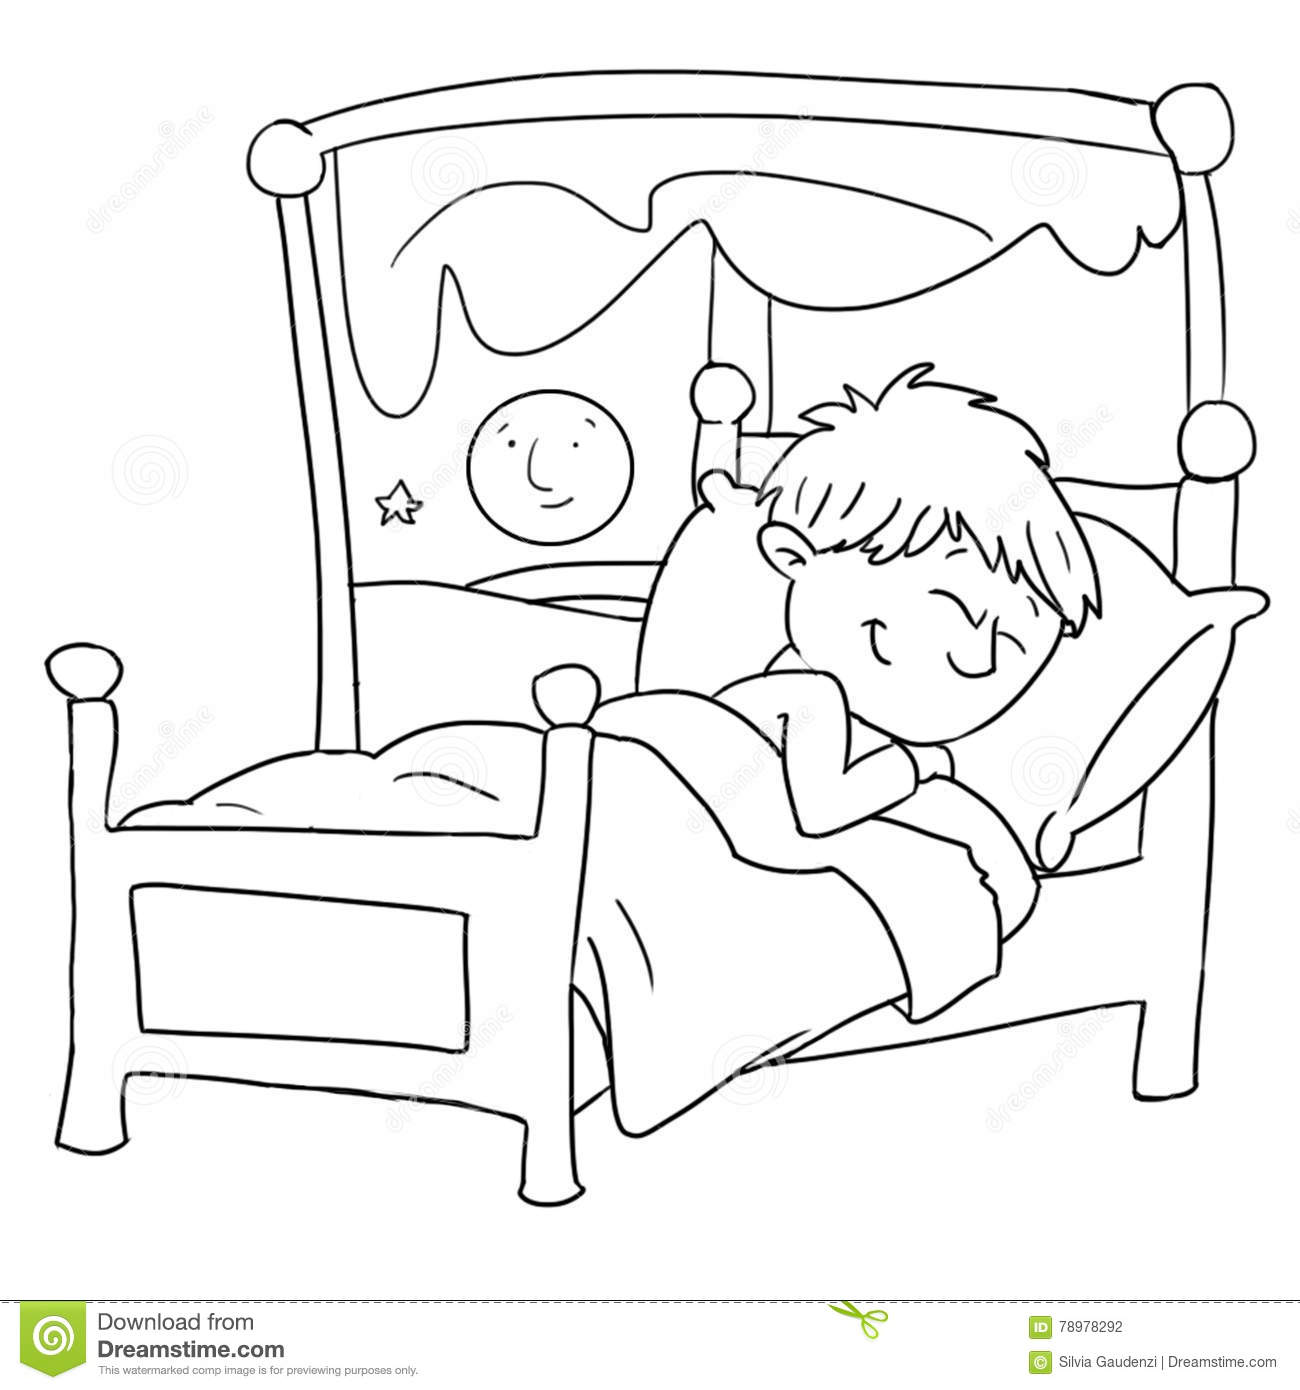 Black And White Baby Sleeping: The Baby Is Sleeping In Her Bed,chine Drawn By Color Stock